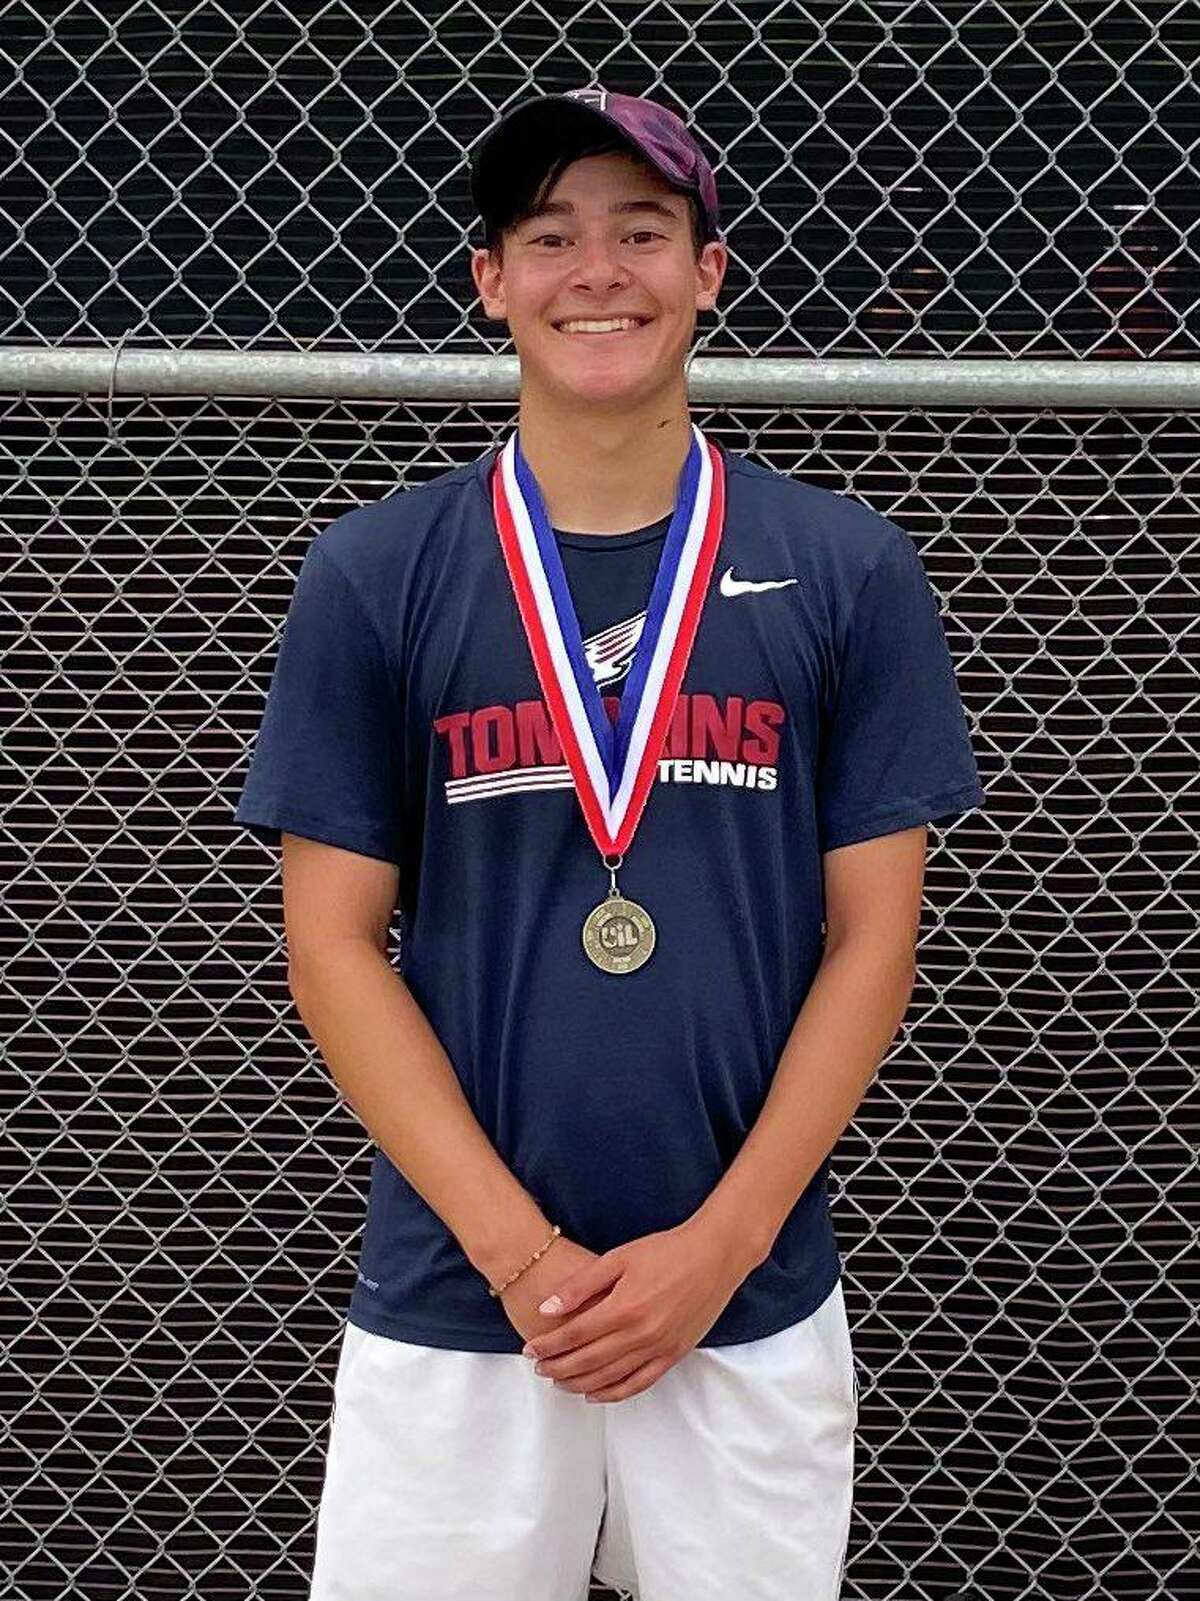 Tompkins junior Charles Kuchler was the boys singles runner-up at the Region III-6A tennis tournament, qualifying for the UIL state tournament.